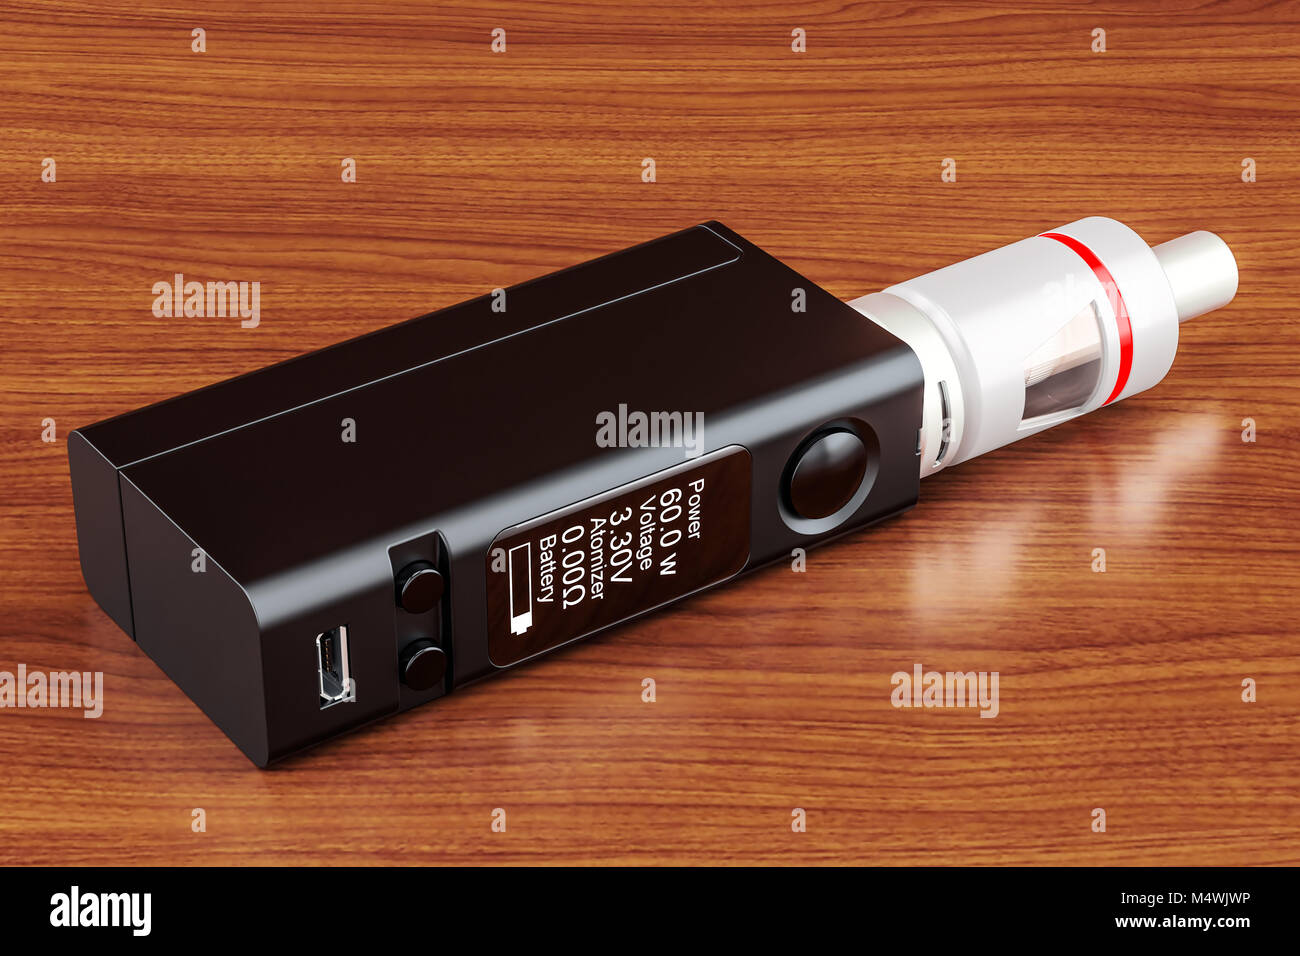 Box Mod e-cigarette, 3D rendering on the wooden table. 3D rendering - Stock Image